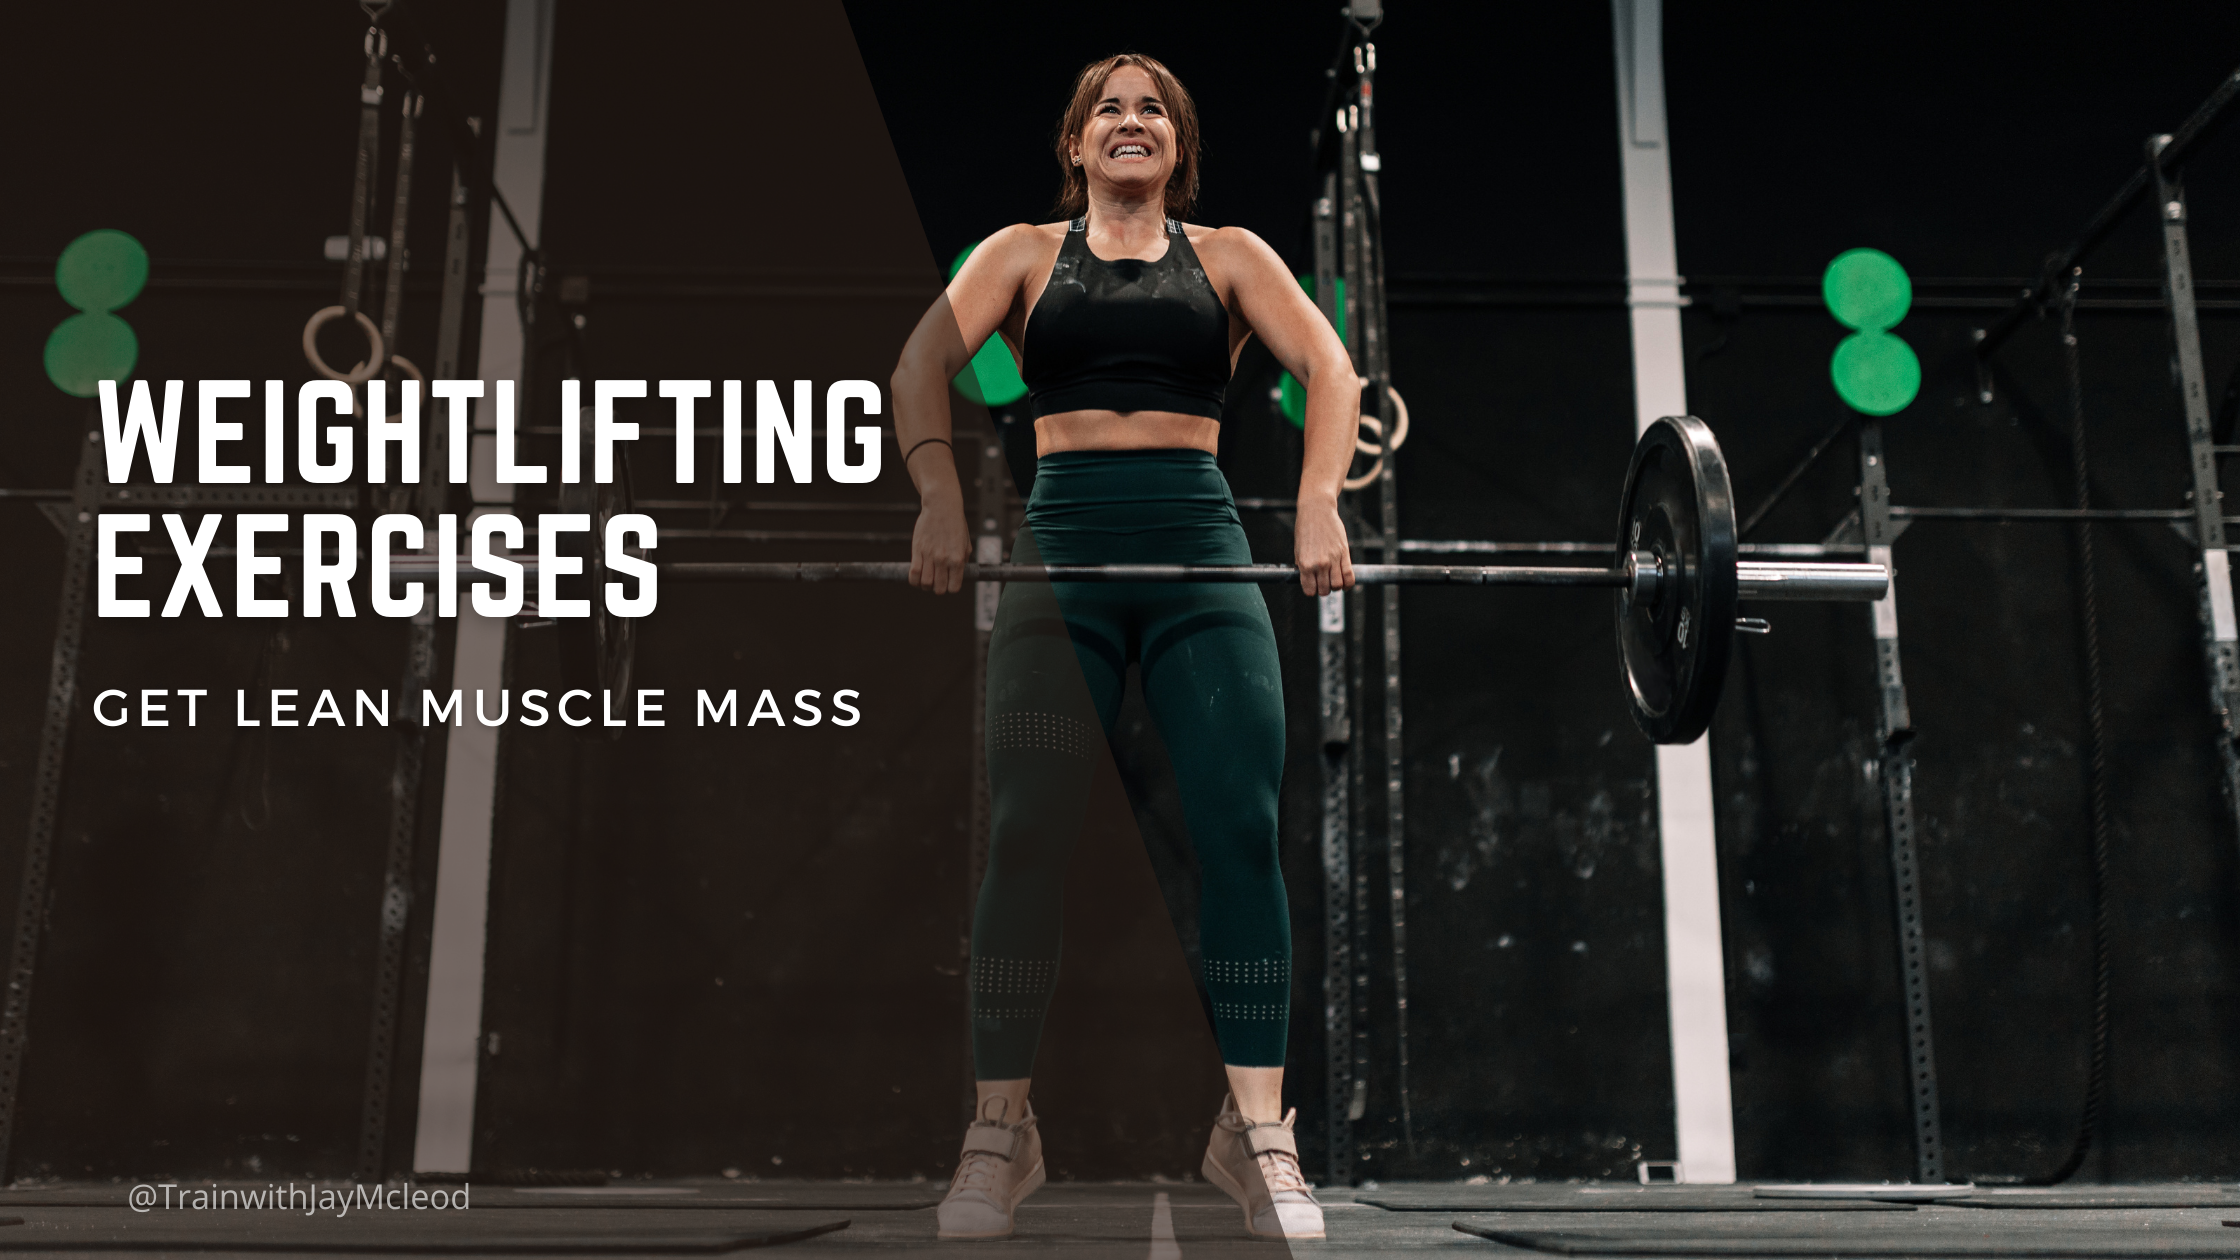 5 Weightlifting Exercises| Personal Training in Bel Air, California